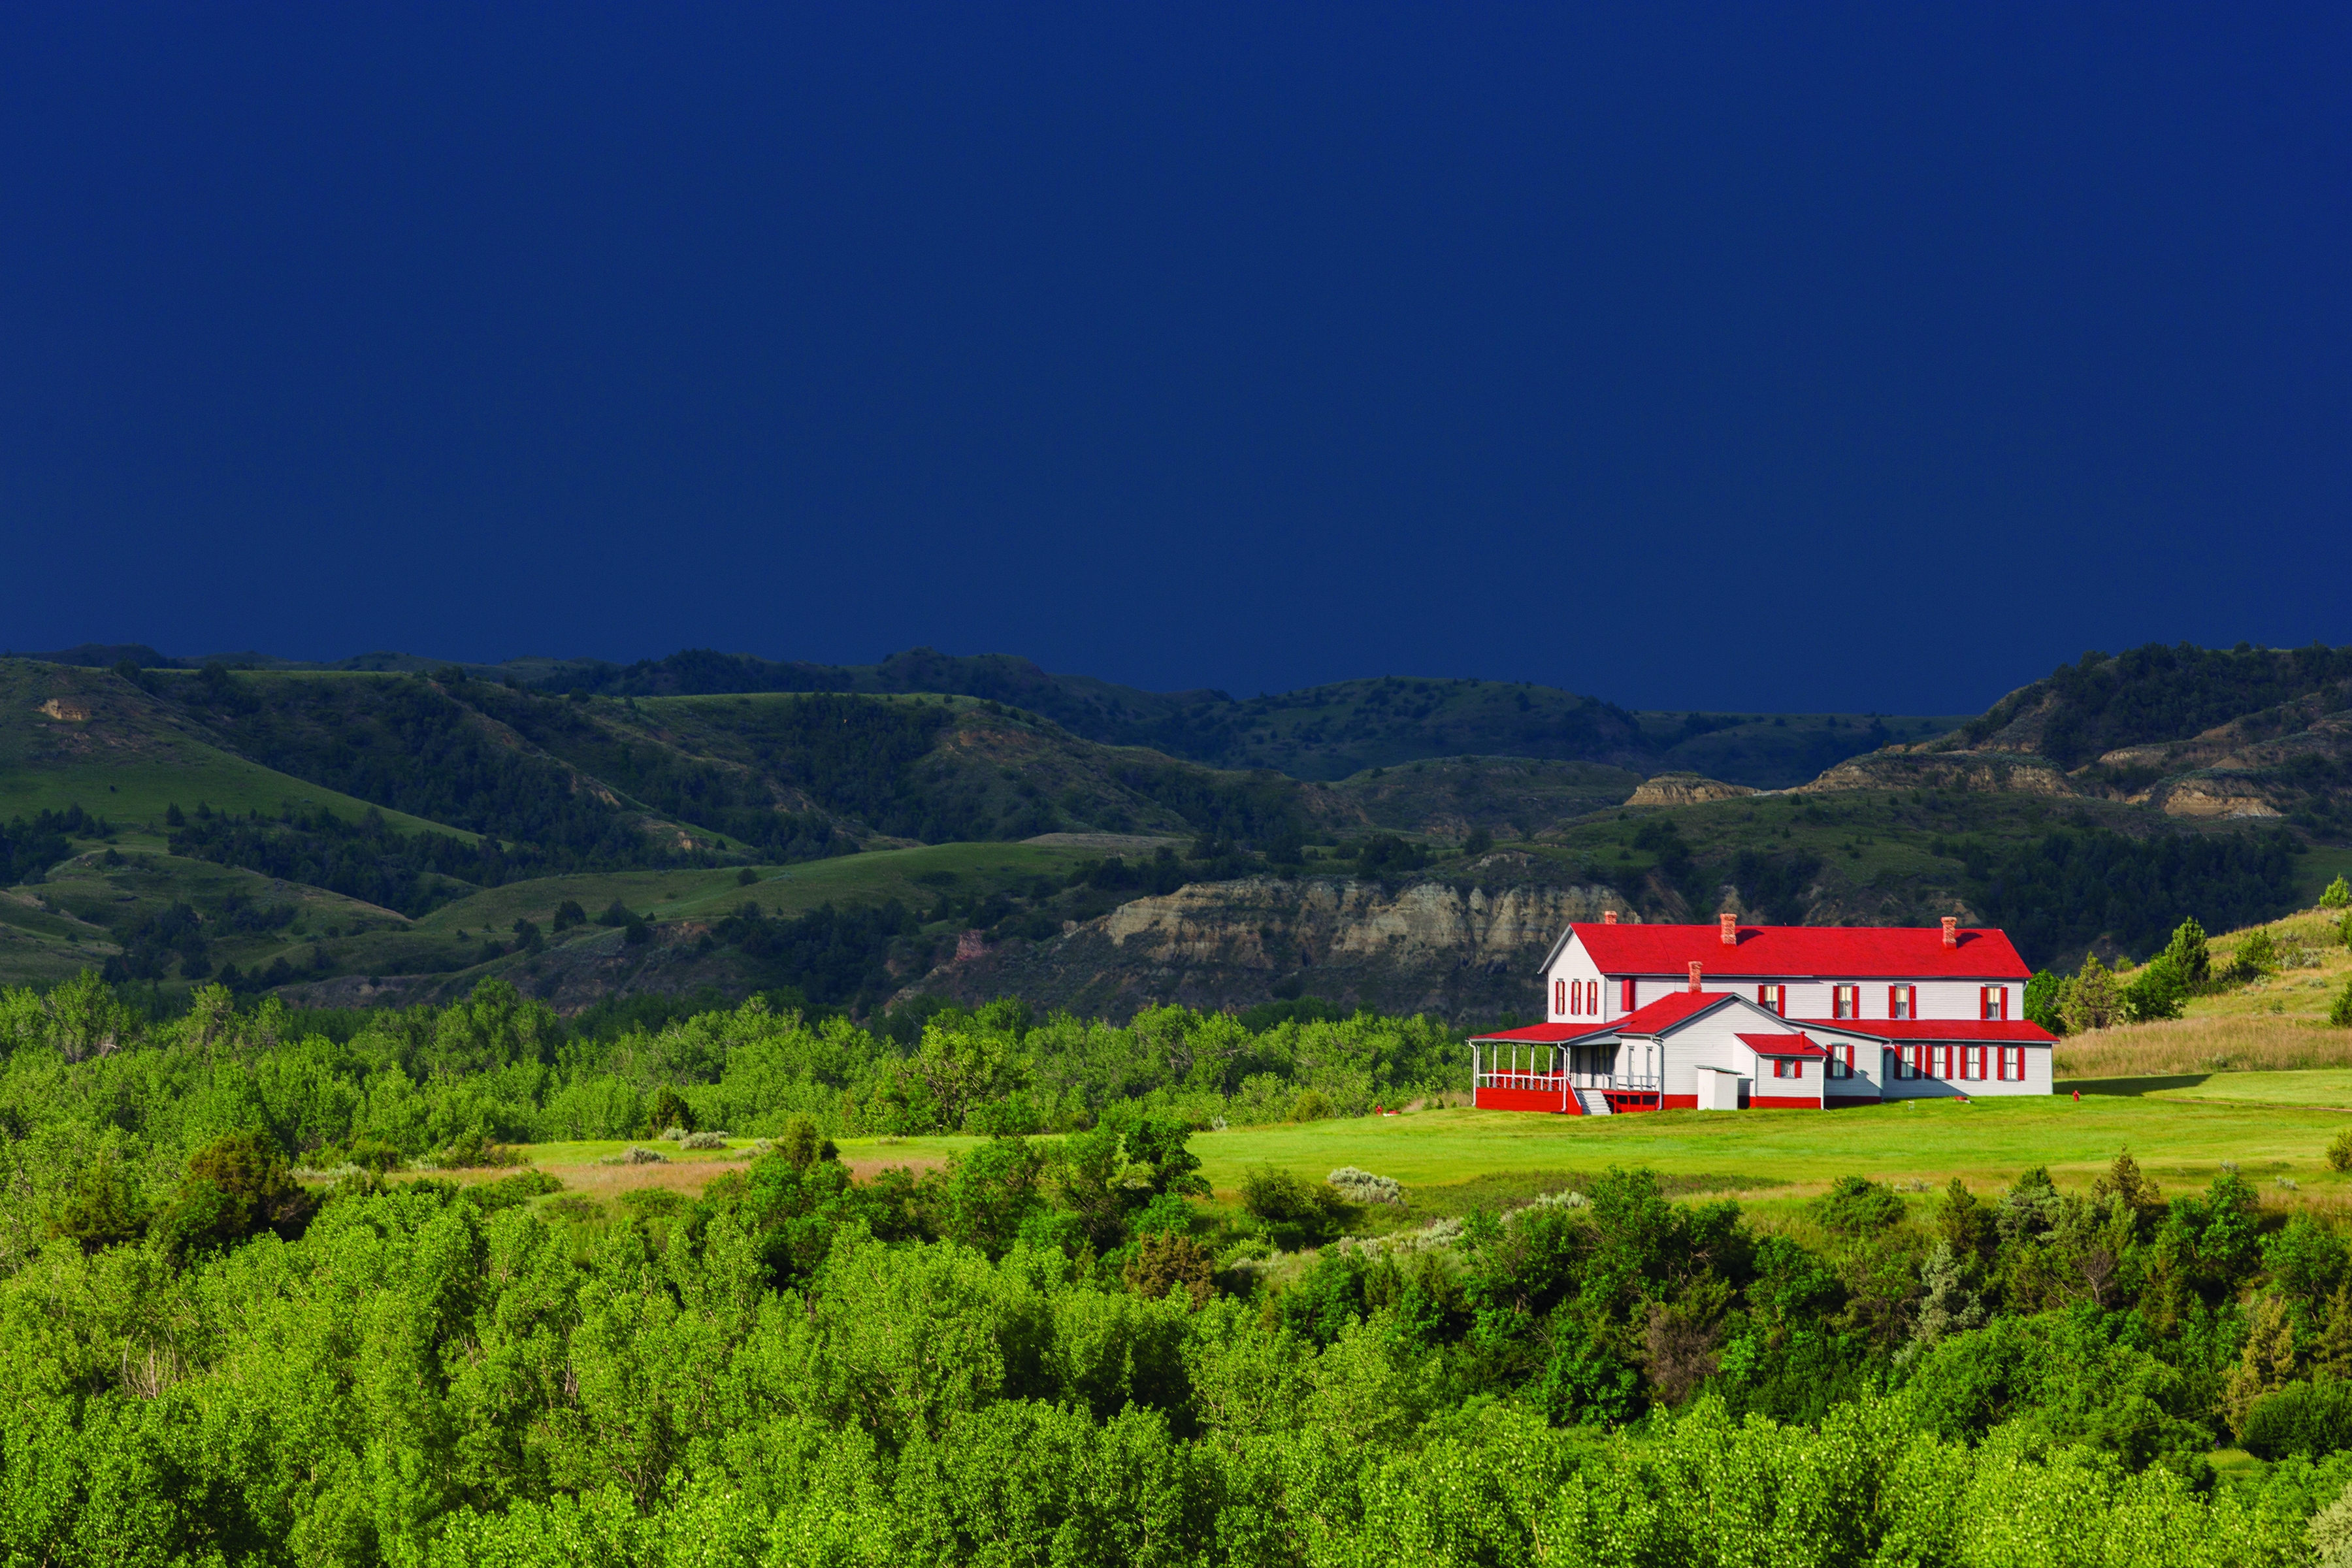 The Chateau de Mores in Medora, North Dakota was home to a French marquis in the 1800s. Photo courtesy of North Dakota Tourism